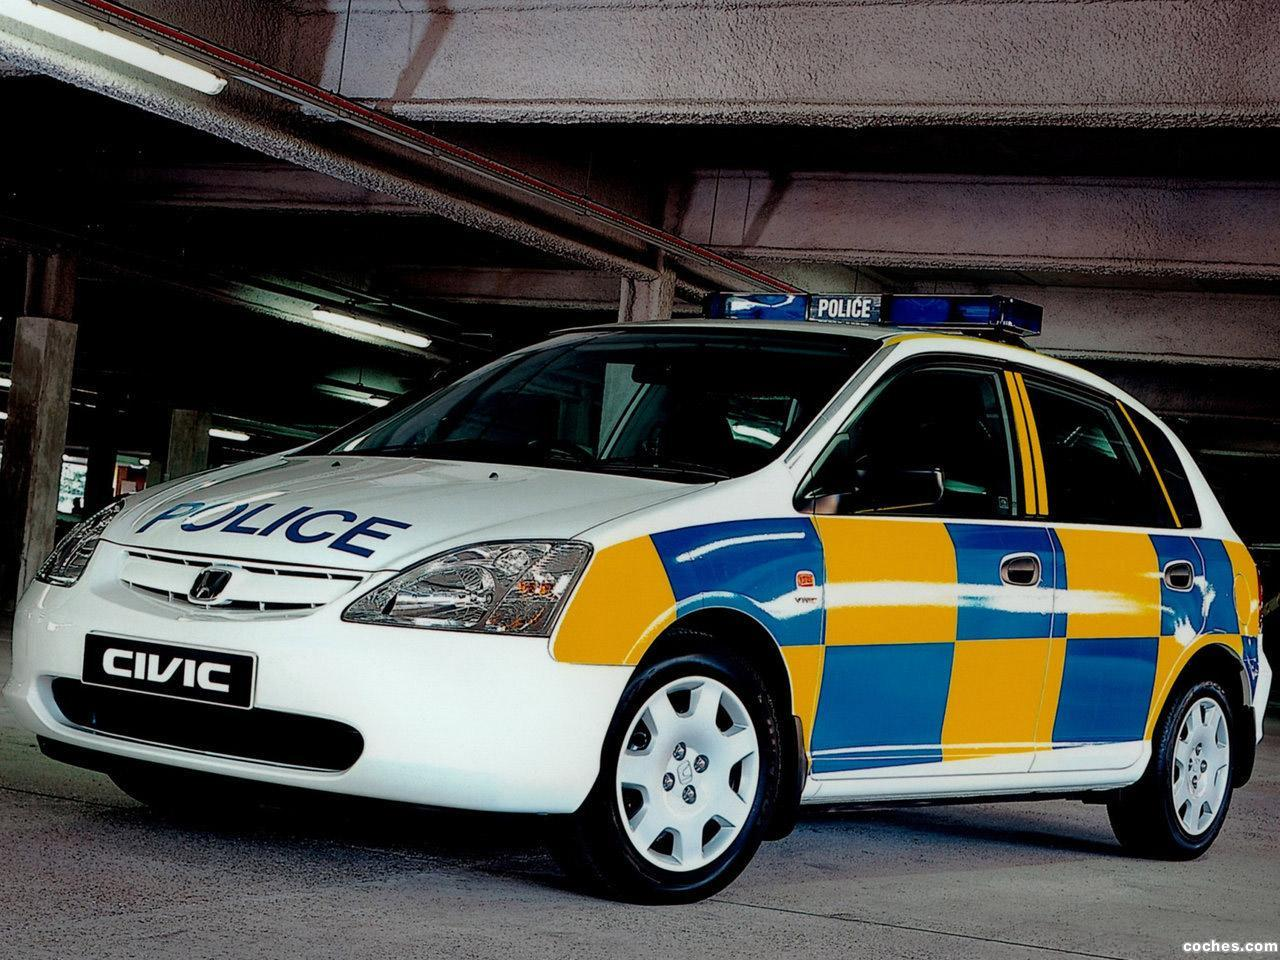 Foto 0 de Honda Civic 5 door Police 2001